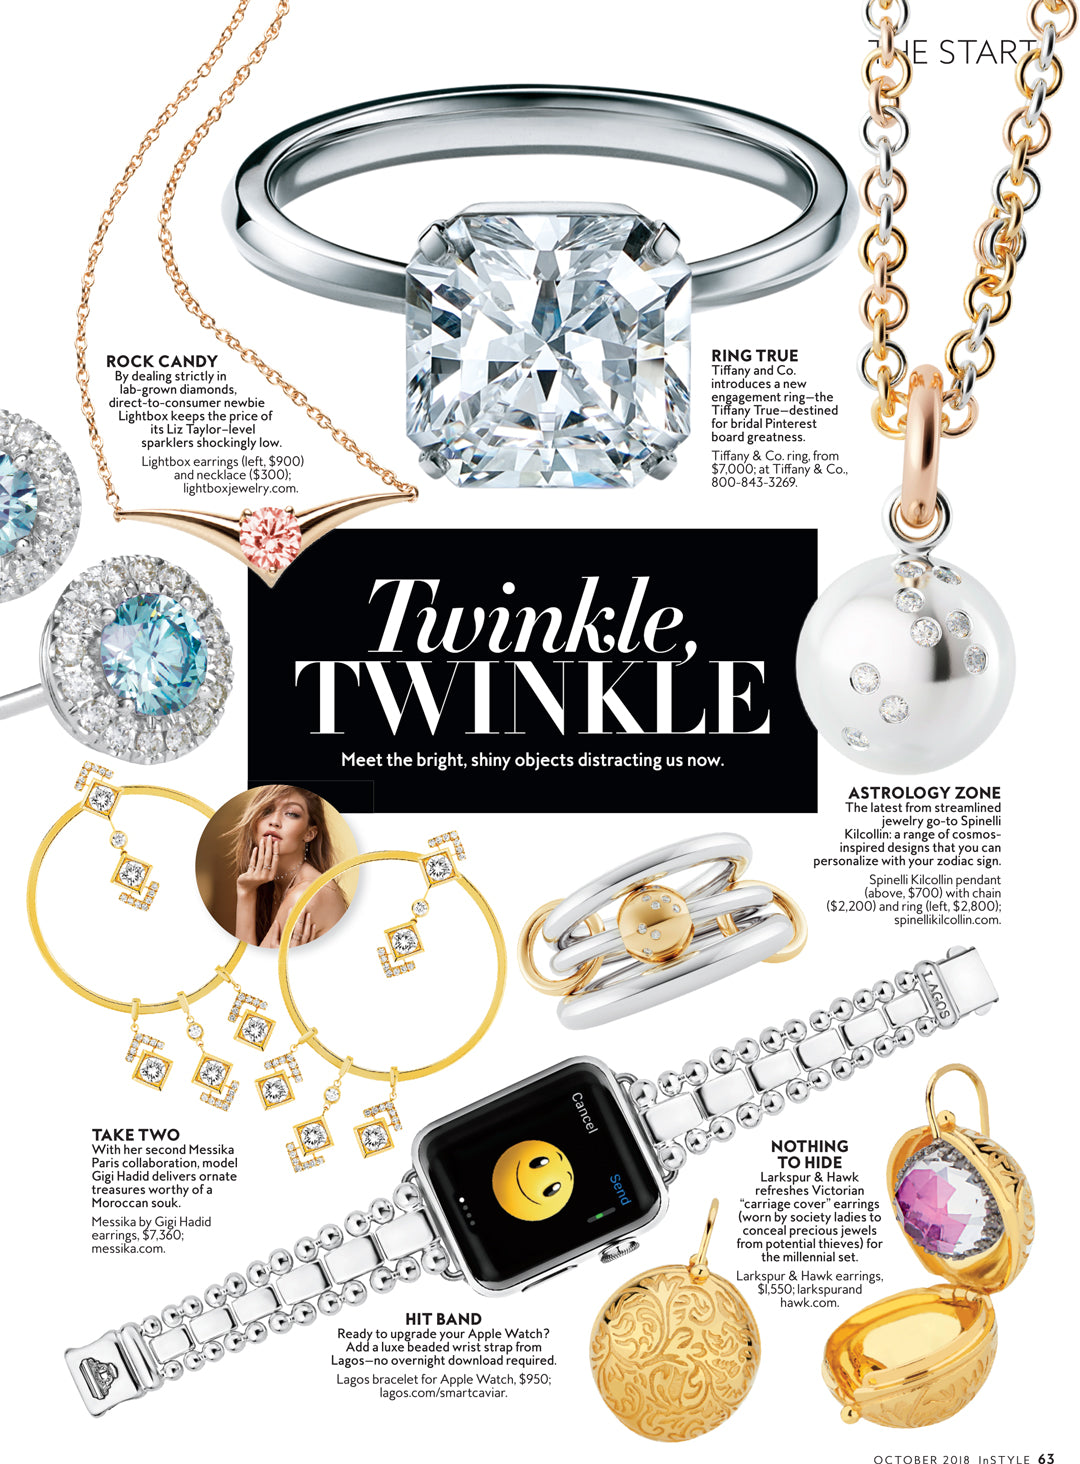 instyle spinelli kilcollin zodiac collection luxury-jewelry